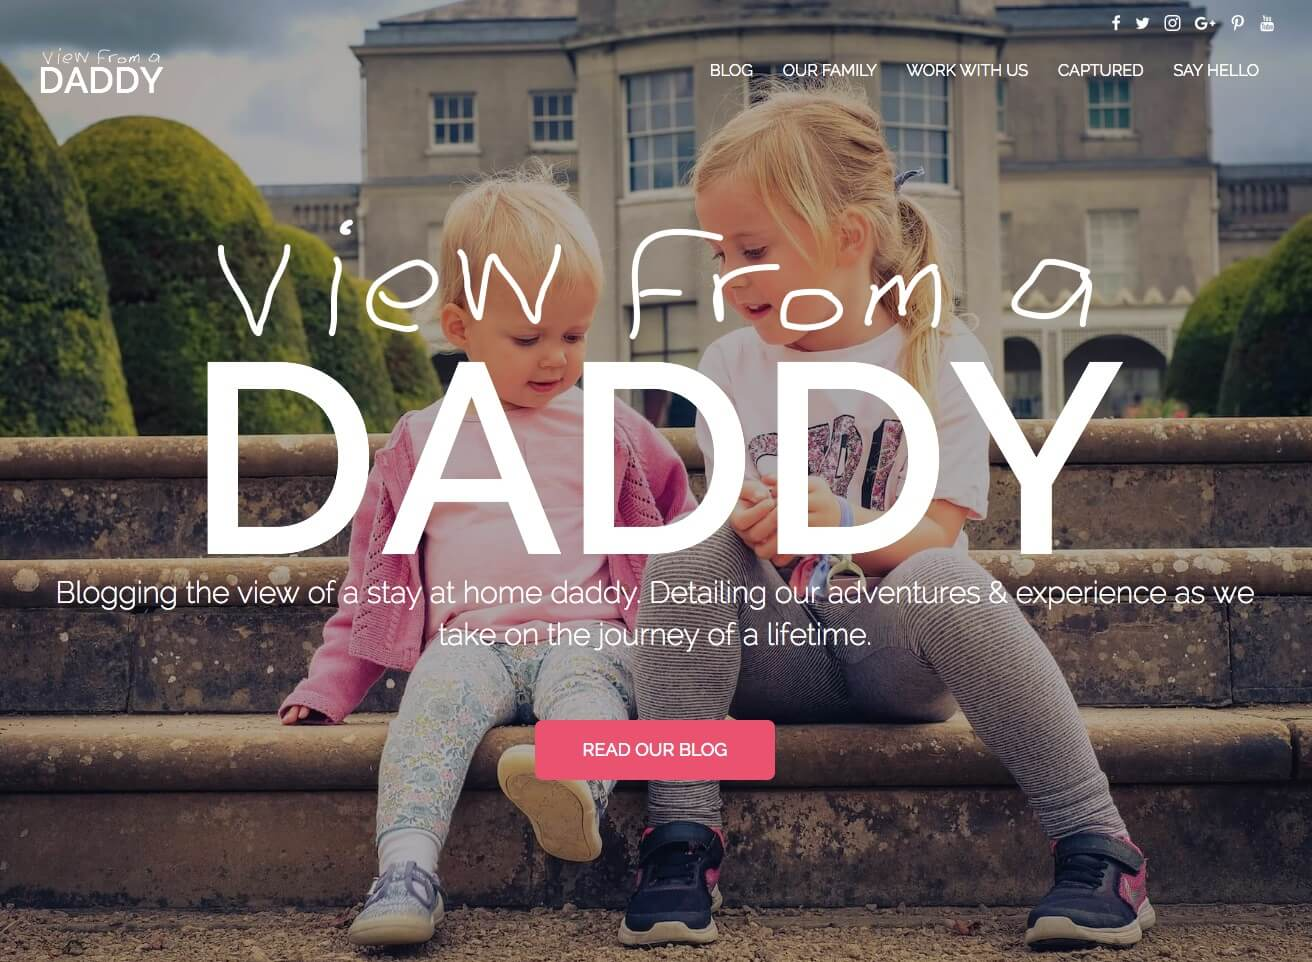 View From A Daddy - - HIBBSCO LTD Web Design